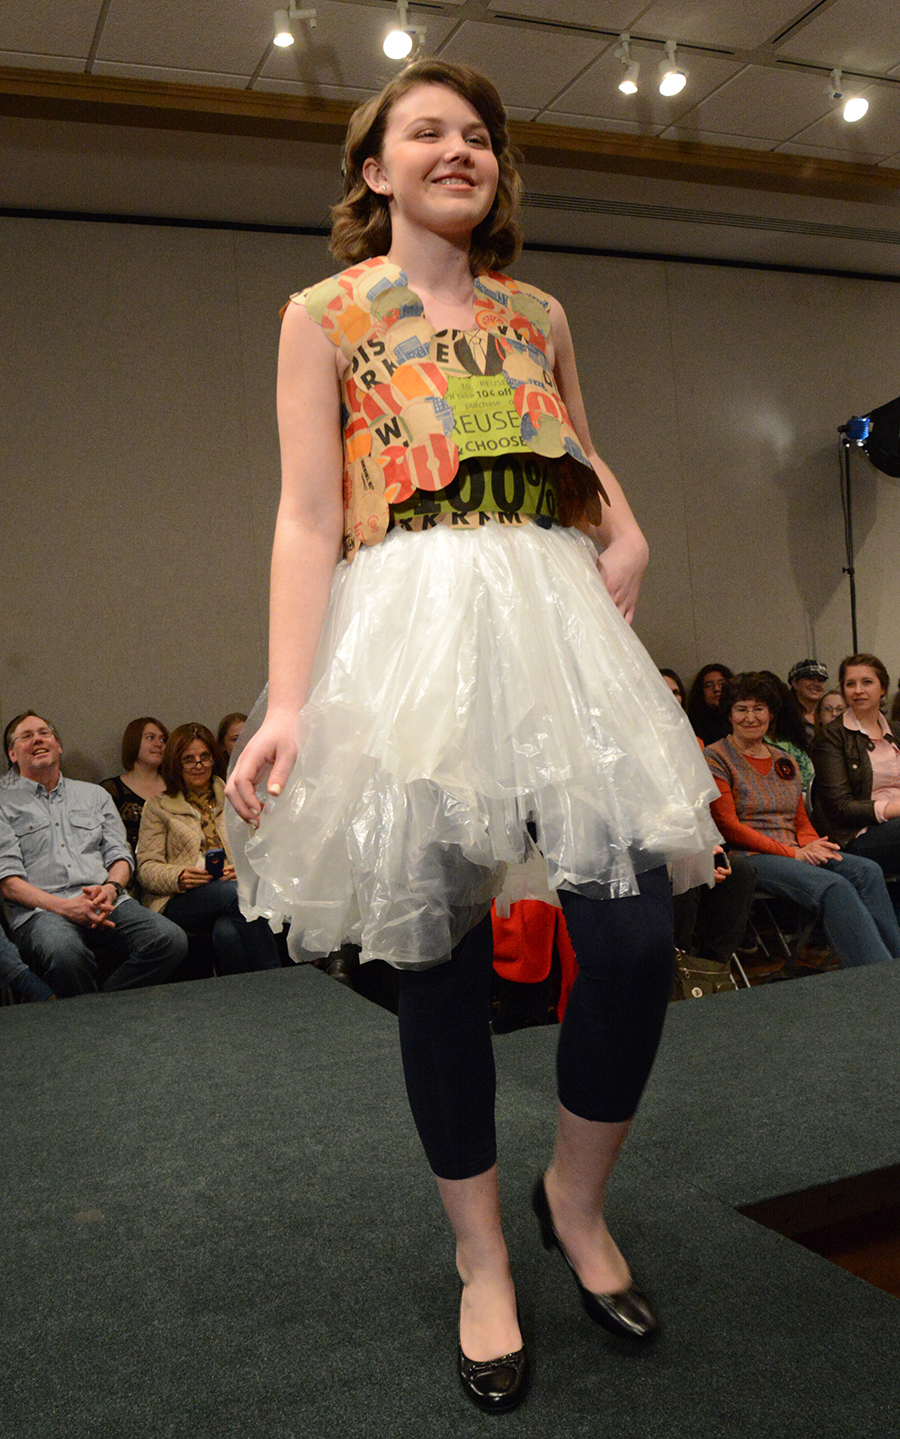 A volunteer models an upcycled garment.